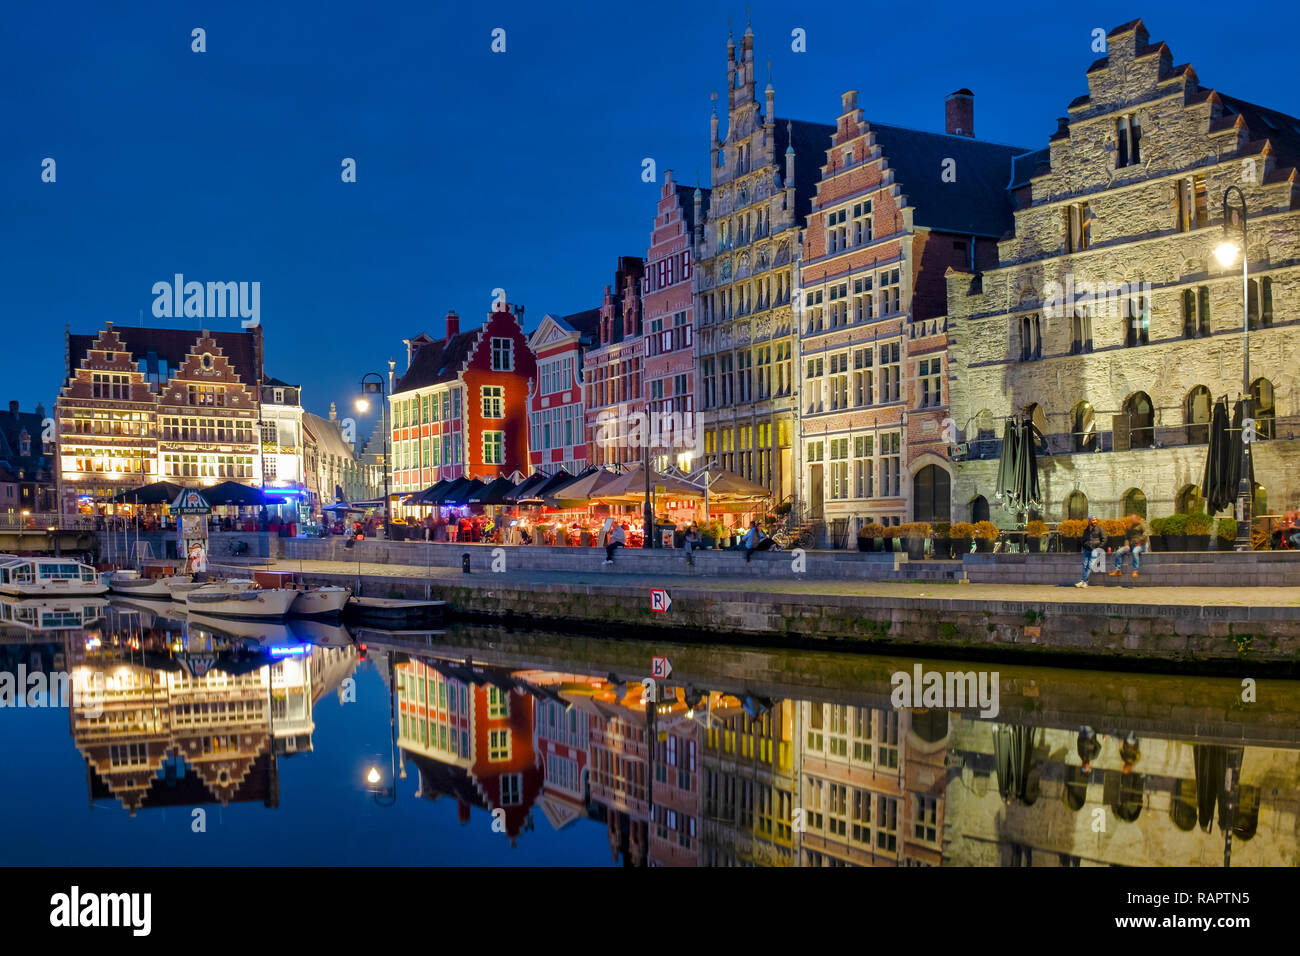 Graslei, a quay in the historic city center of Ghent, Flanders, Belgium - Stock Image